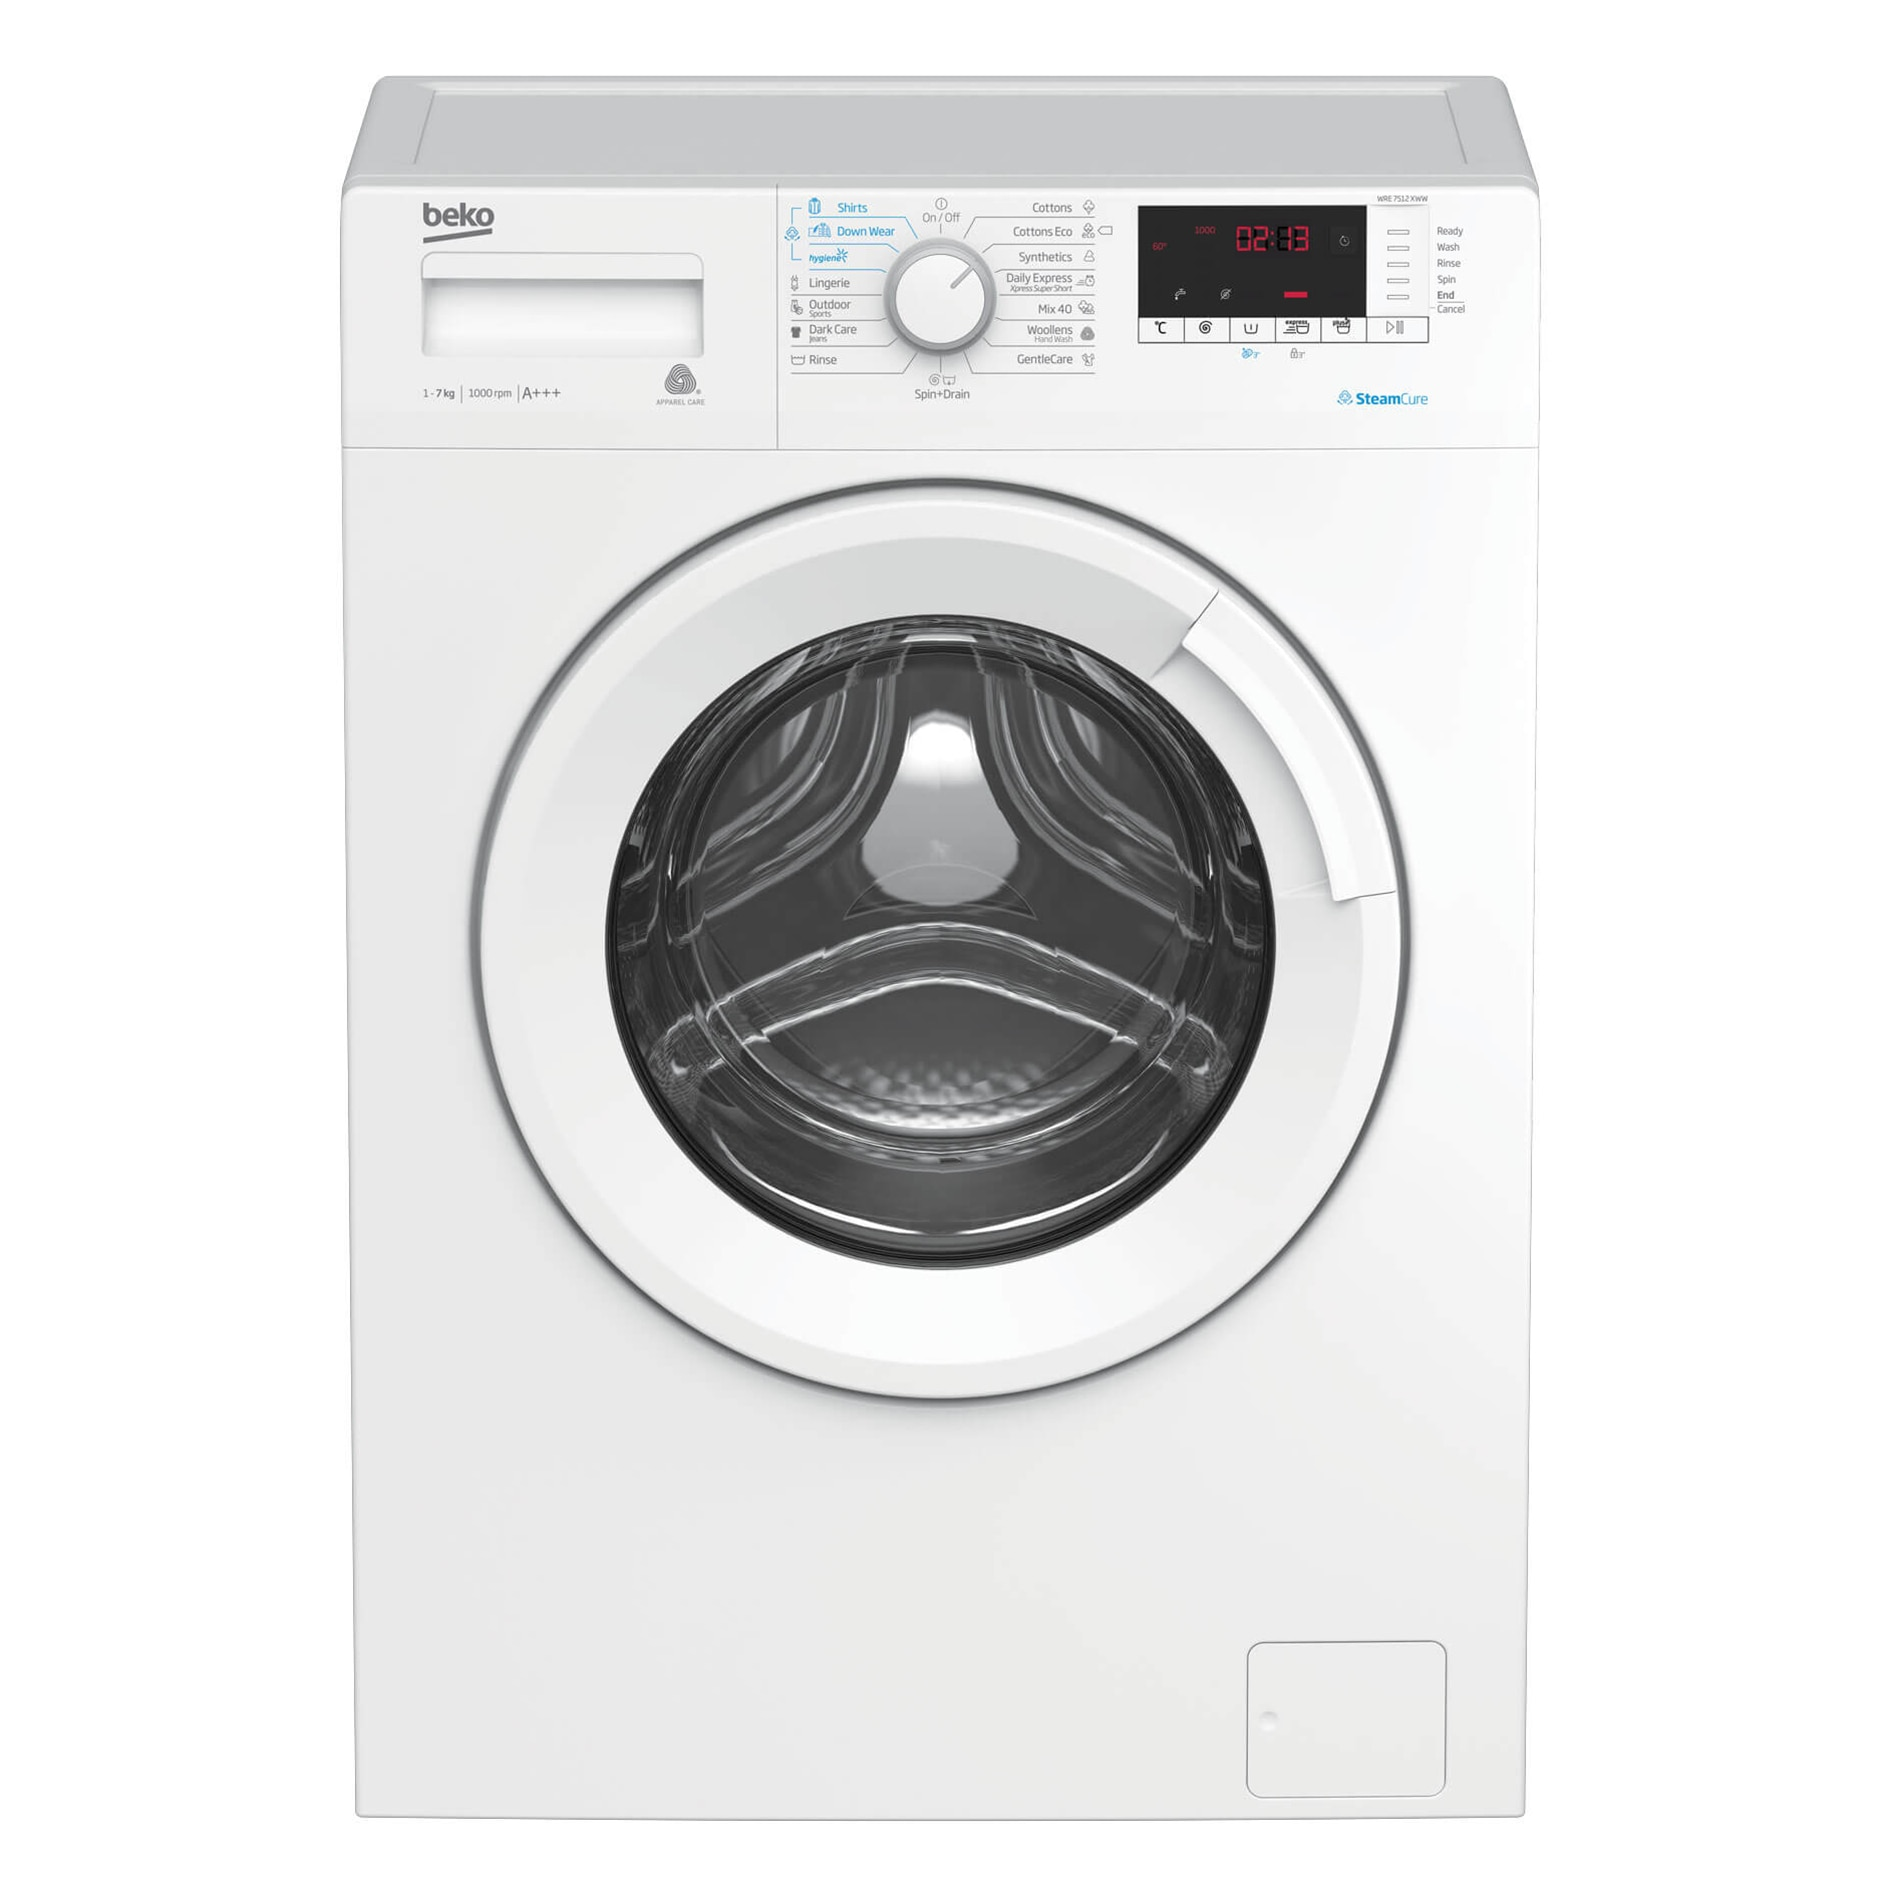 Fotografie Masina de spalat rufe Slim Beko WRE7512XWW, 7 kg, 1000 RPM, Clasa A+++, Steam Cure, Display digital, Alb